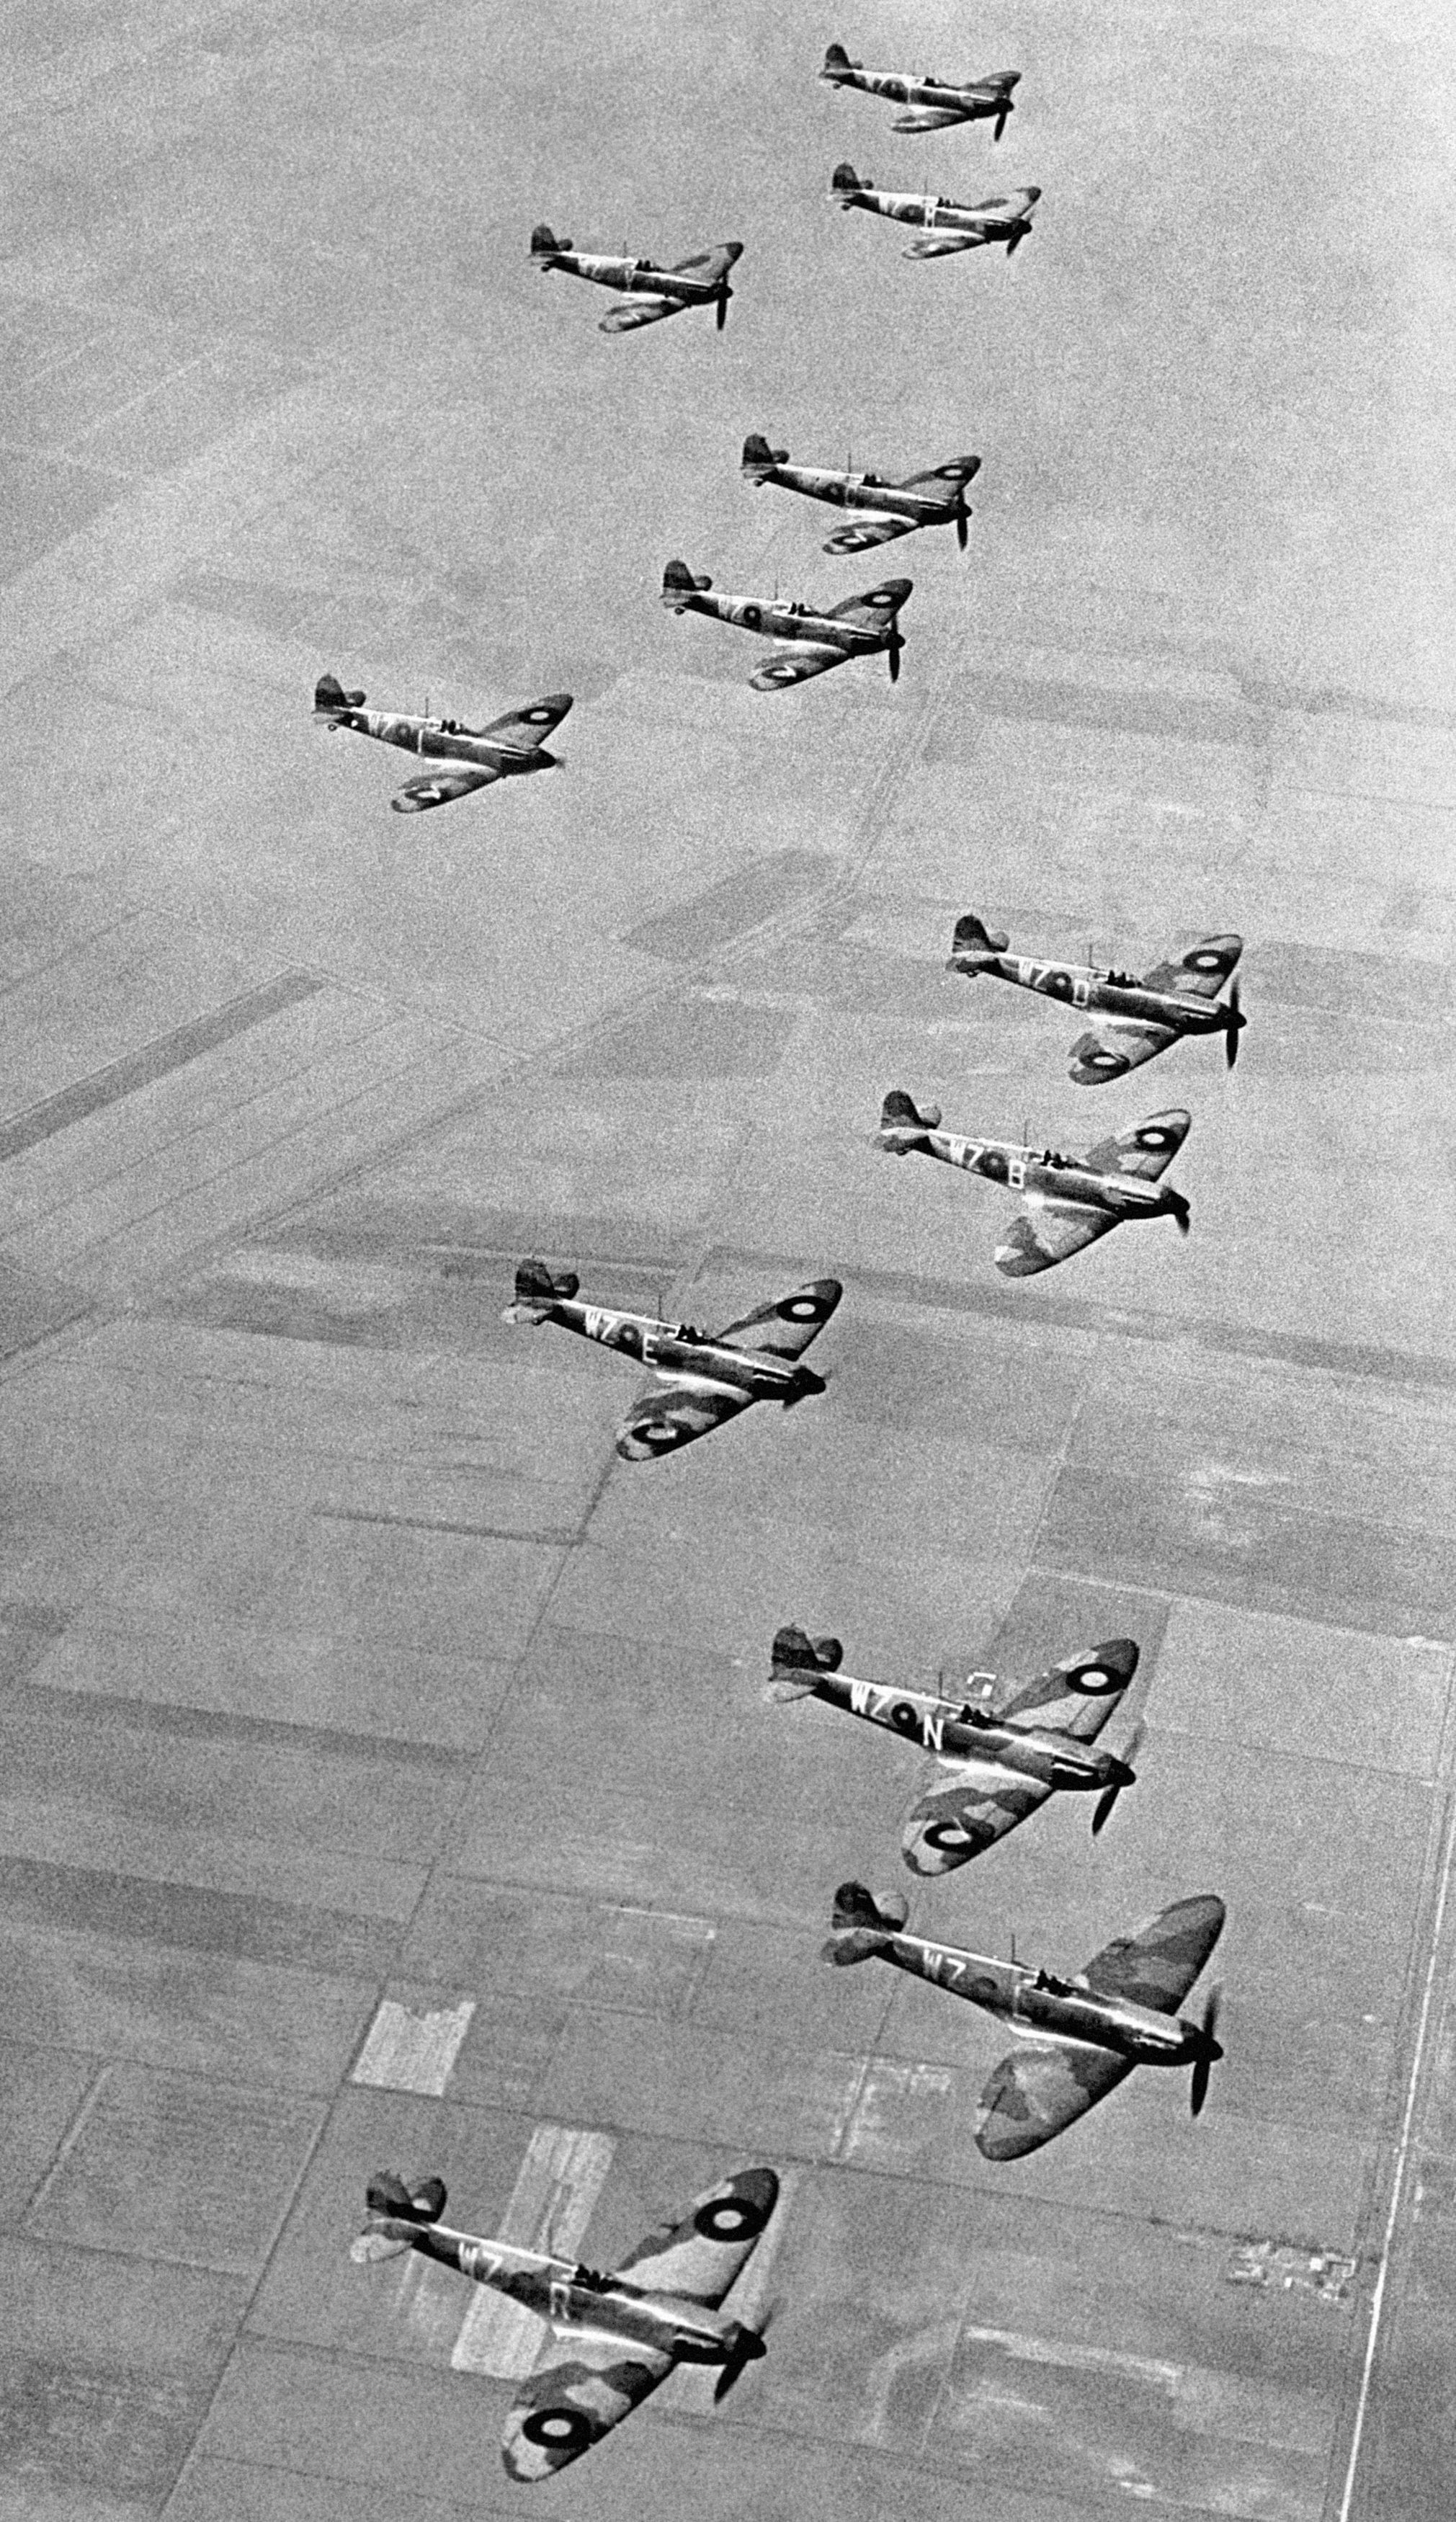 No19 Fighter Squadron, based at Duxford, Cambridgeshire, flying their two blade propeller Supermarine Spitfire aircraft in formation in 1939 (PA)